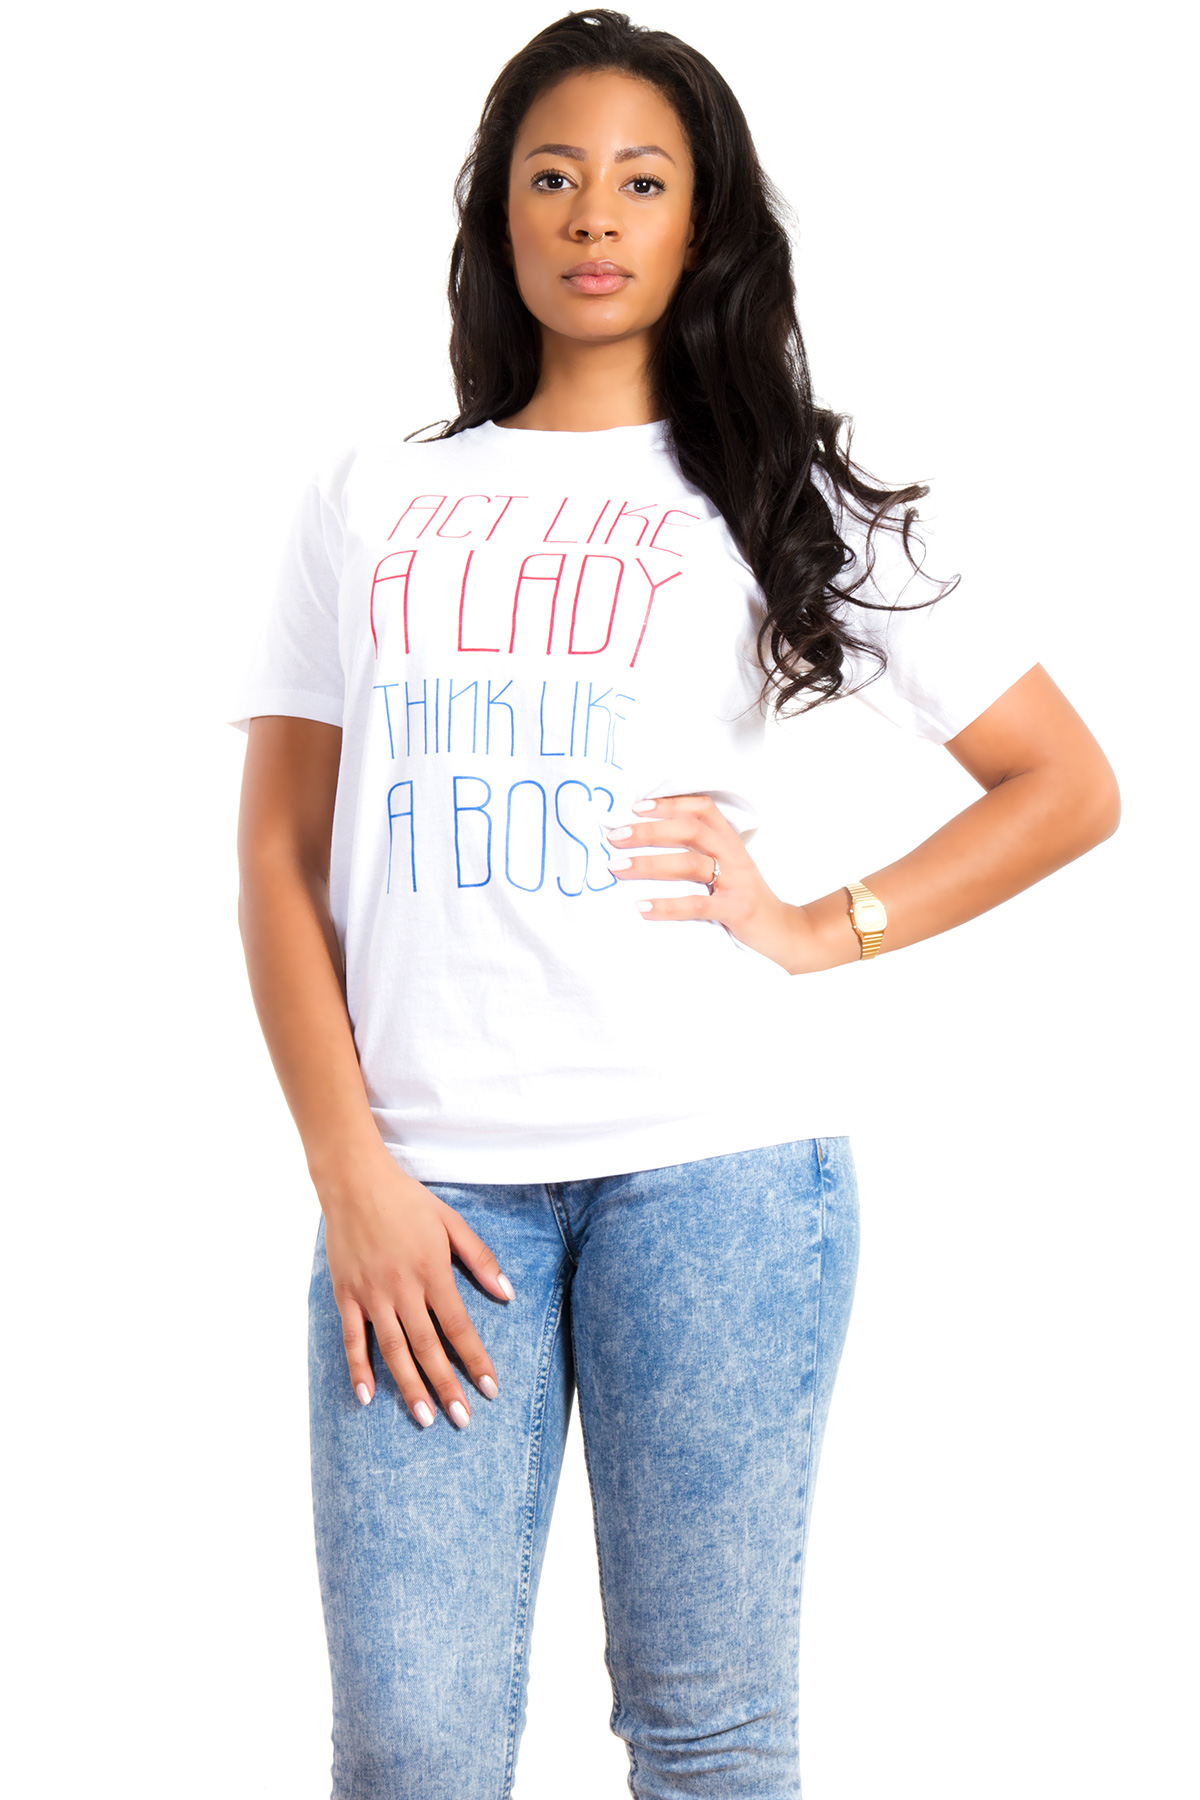 Hyori Act Like A Lady Think Like A Boss T-Shirt in White for Women